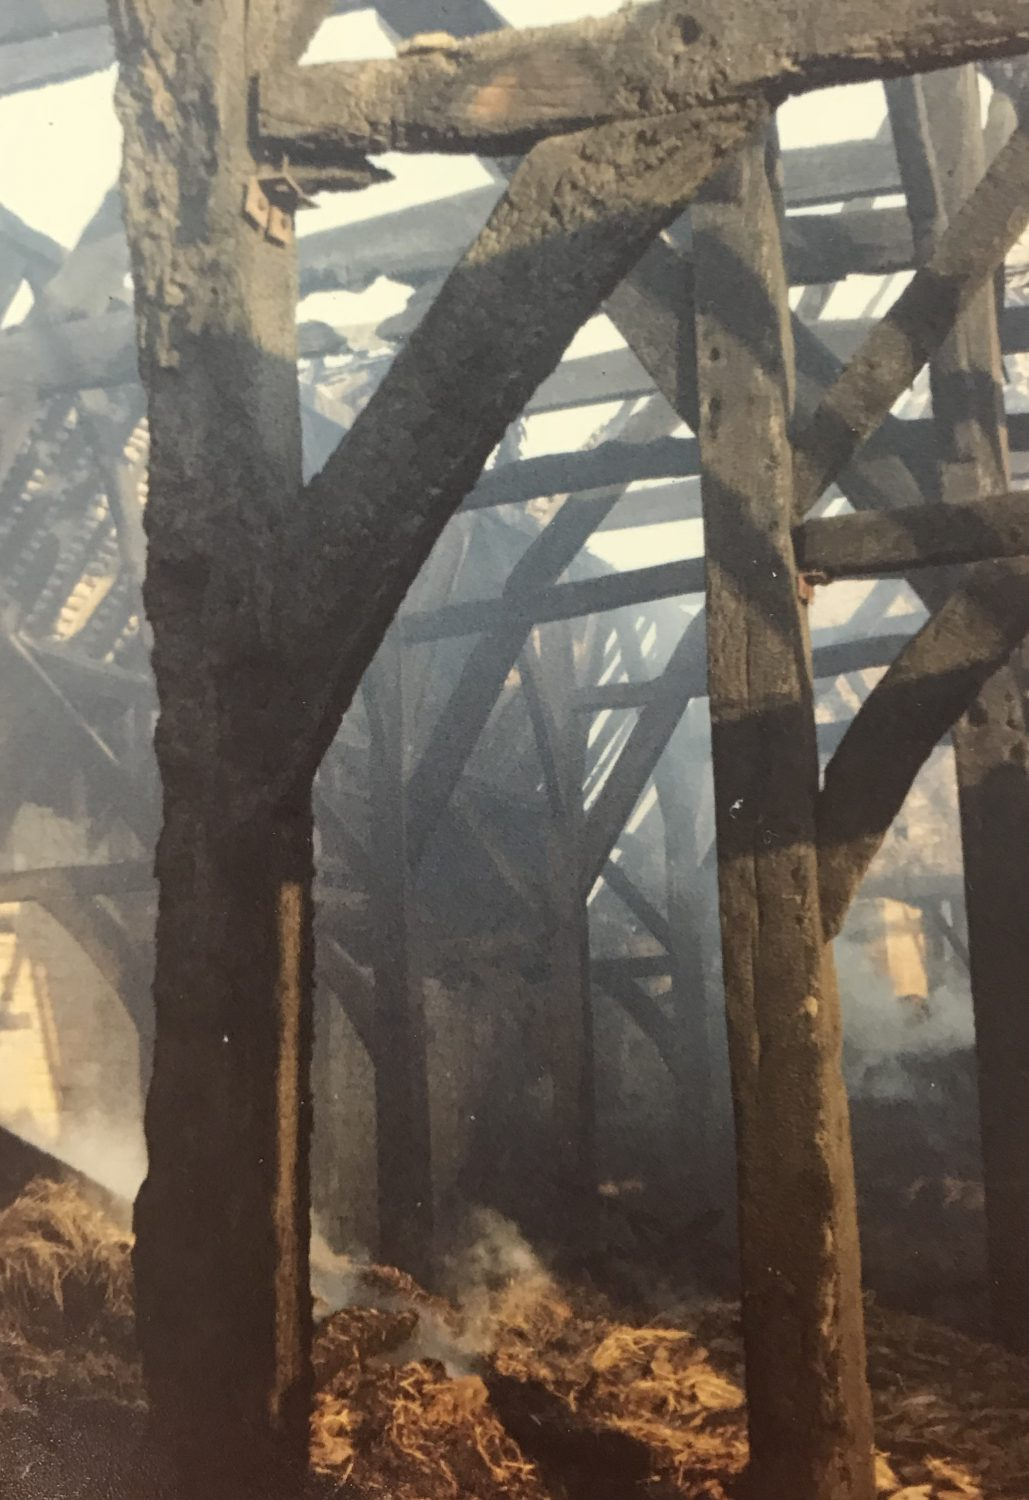 Smouldering hay and blackened timbers in the aftermath of the fire